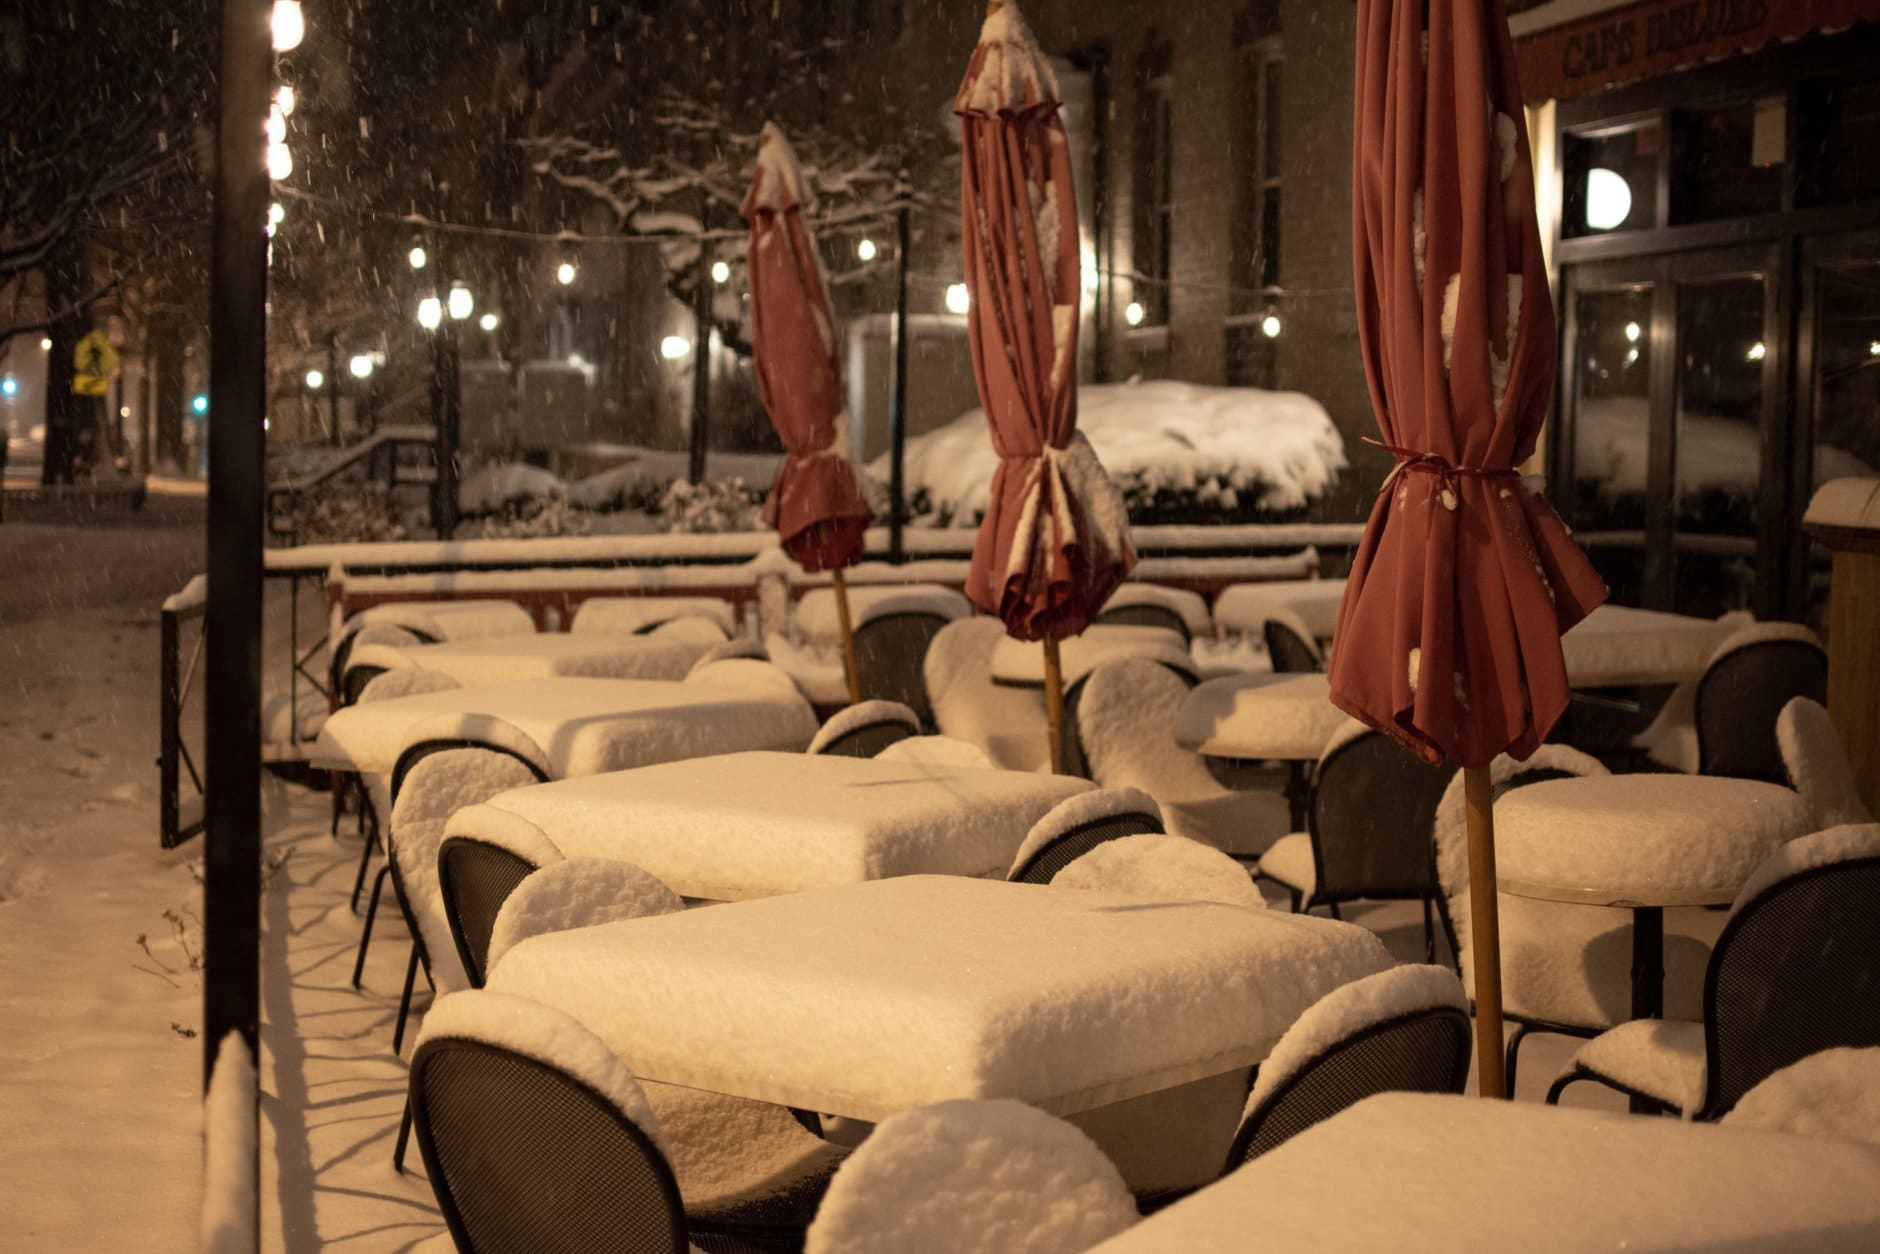 Snow accumulating on table outside a restaurant along Wisconsin Avenue in northwest D.C. on Sunday. (WTOP/Alejandro Alvarez)